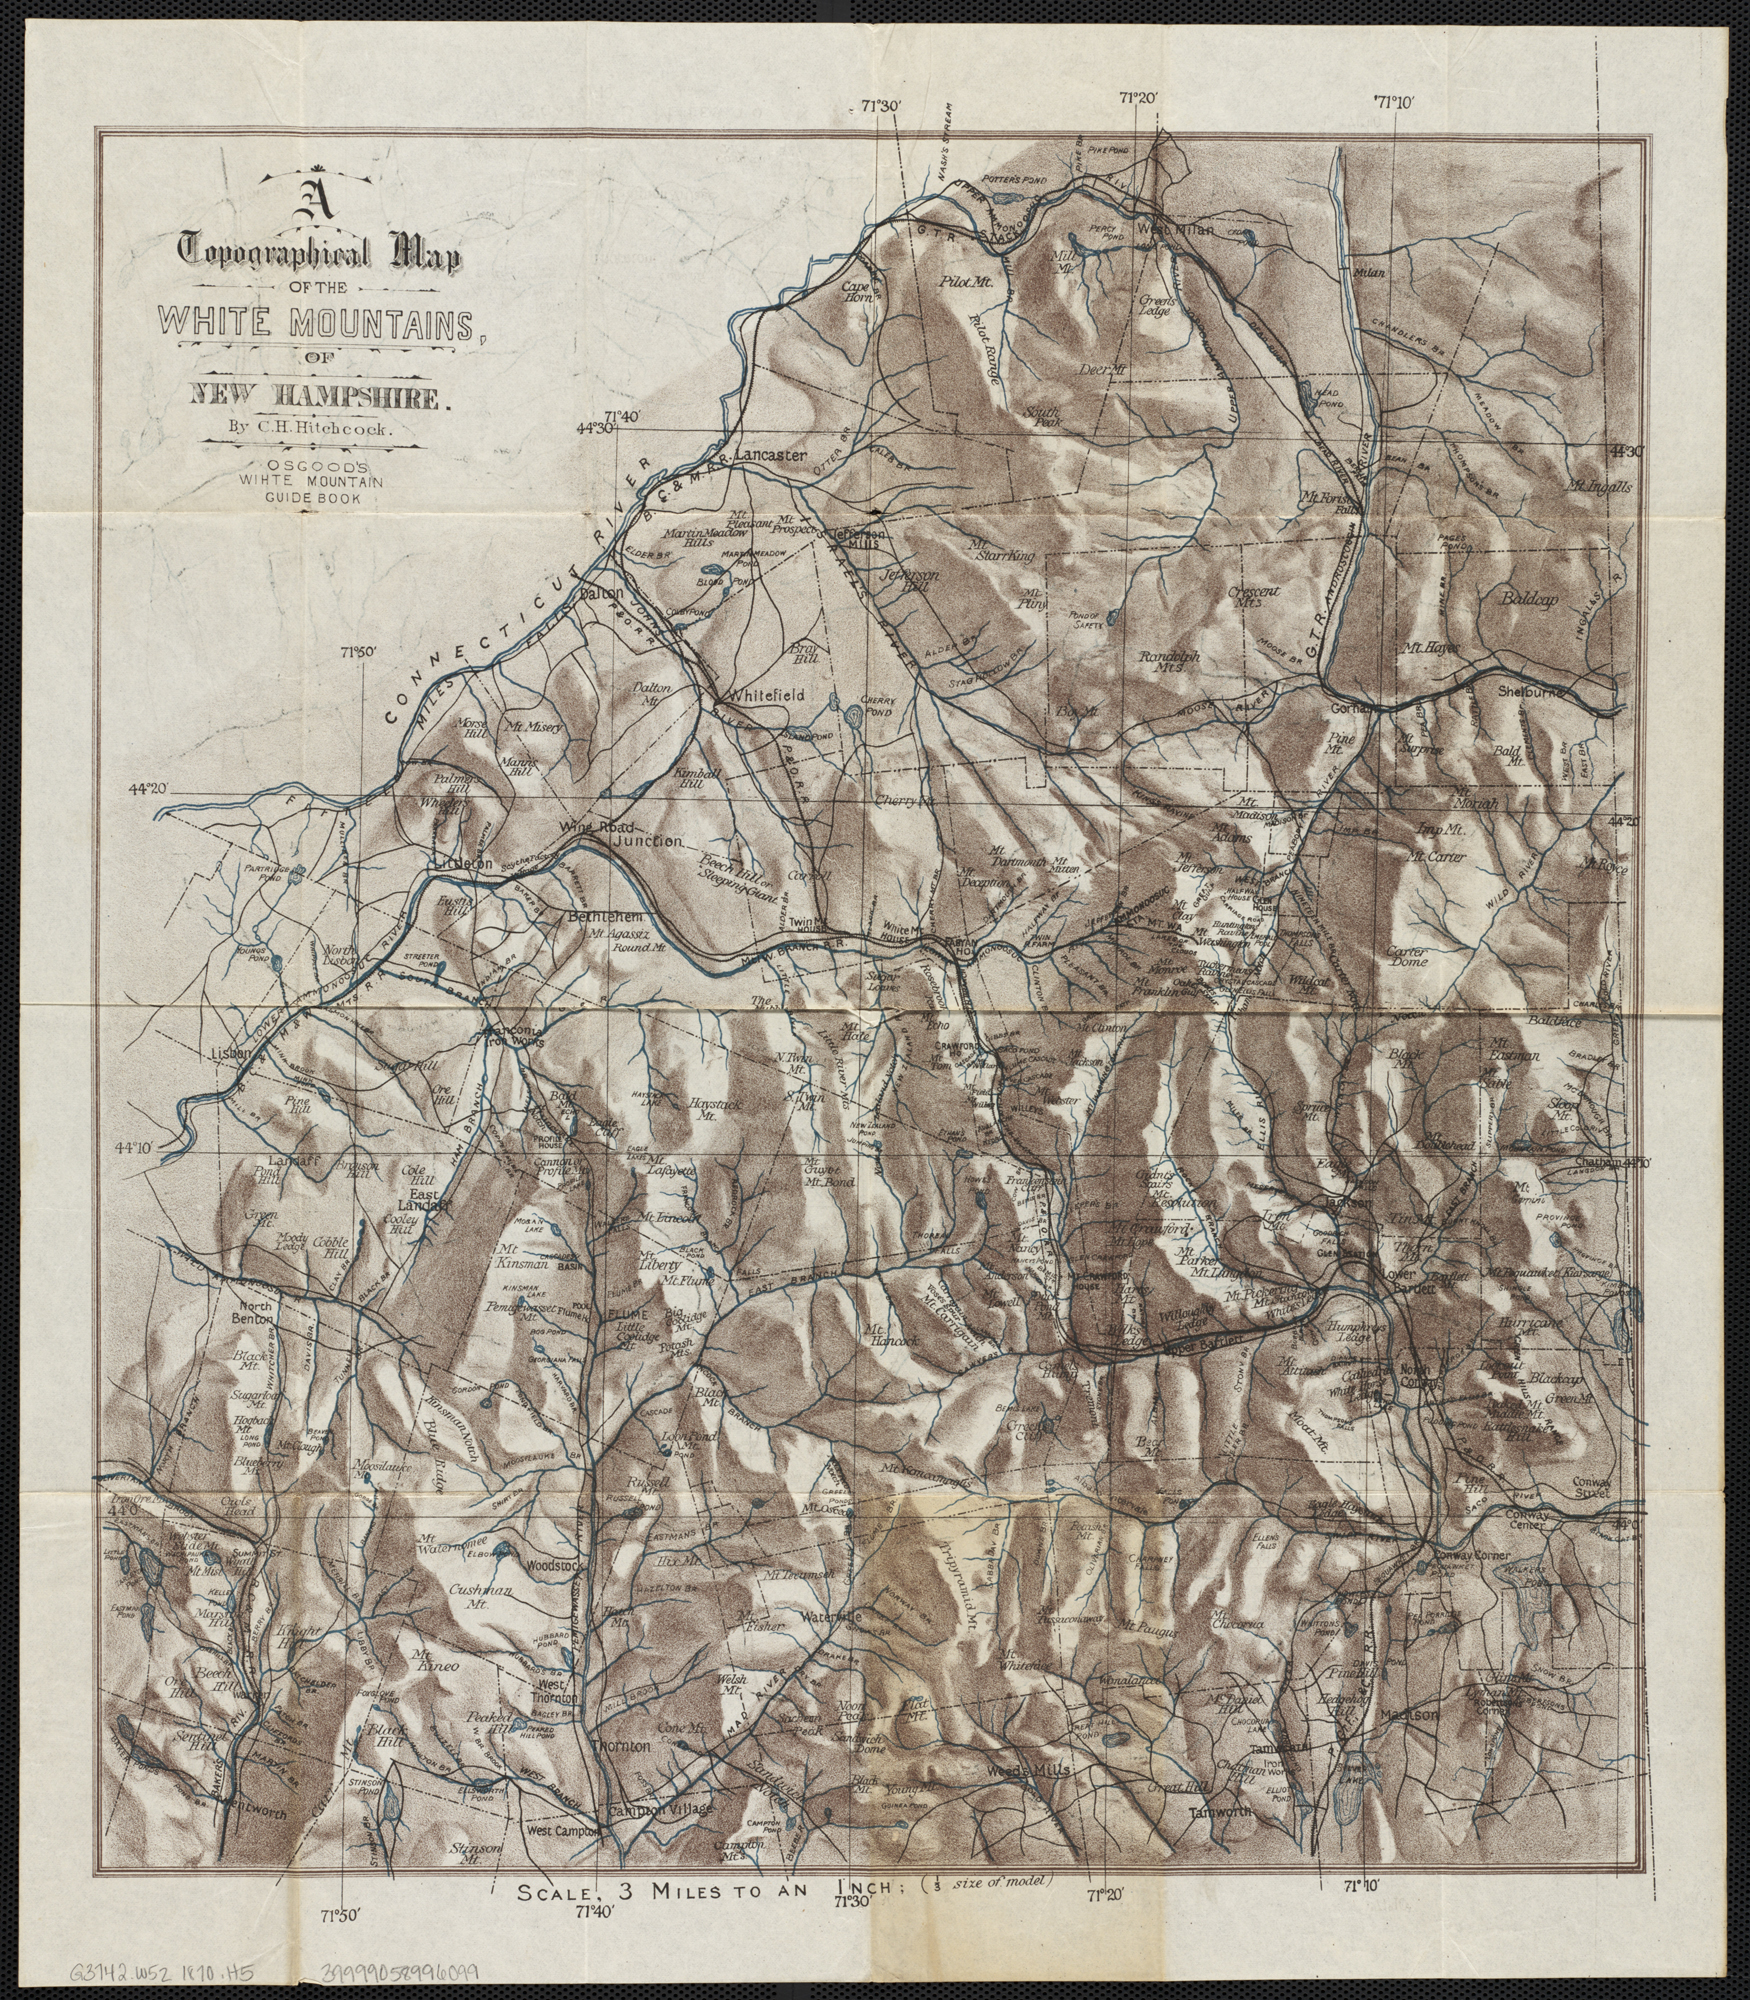 new hampshire white mountains map File A Topographical Map Of The White Mountains Of New Hampshire 2674154169 Jpg Wikimedia Commons new hampshire white mountains map